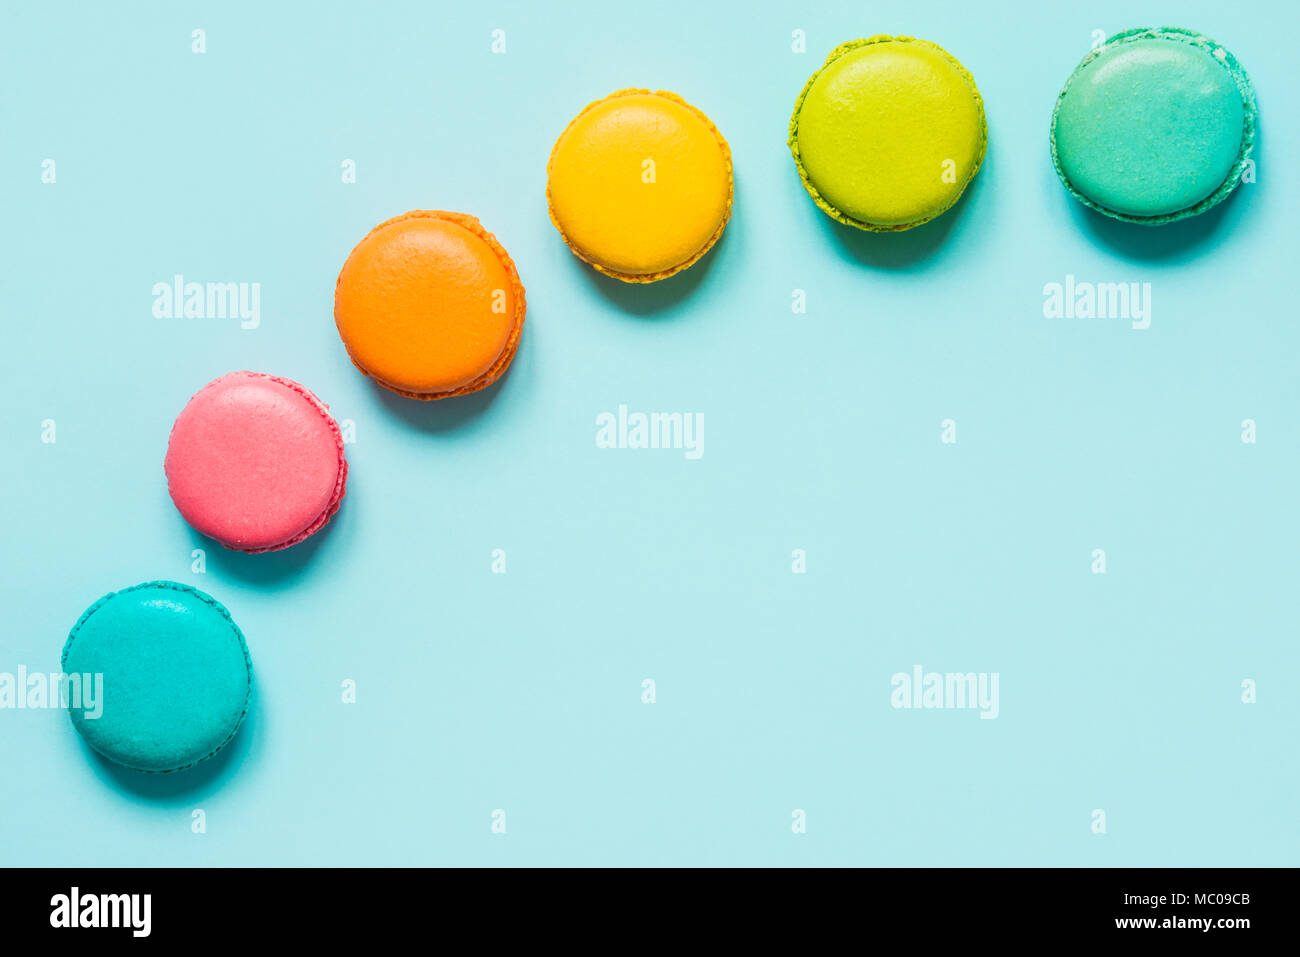 Colorful macaroons arranged like rainbow over blue background. - Stock Image